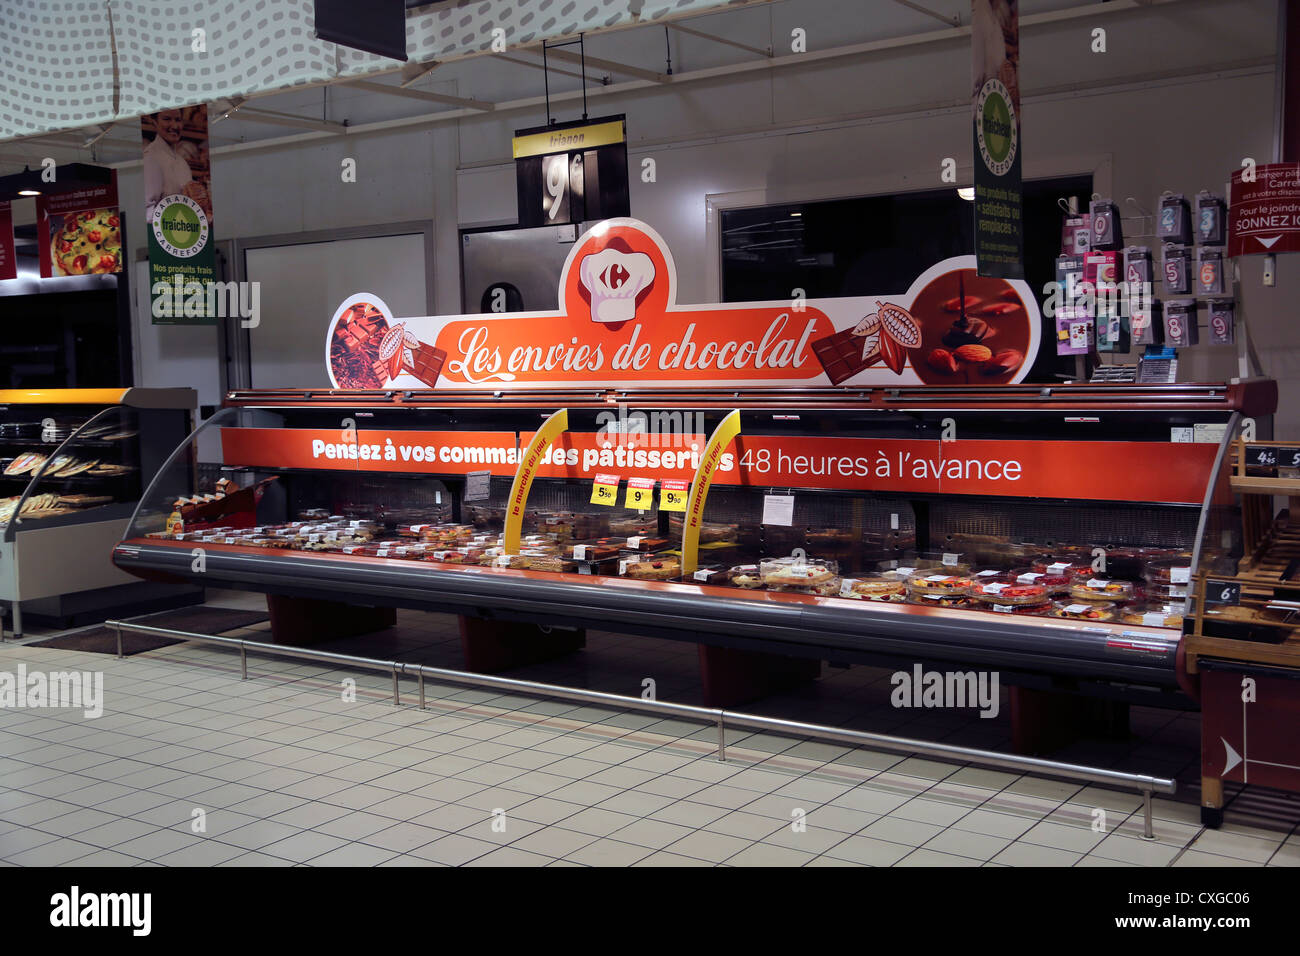 Calais France Cite Europe Carrefour Supermarket Cakes In Patisserie